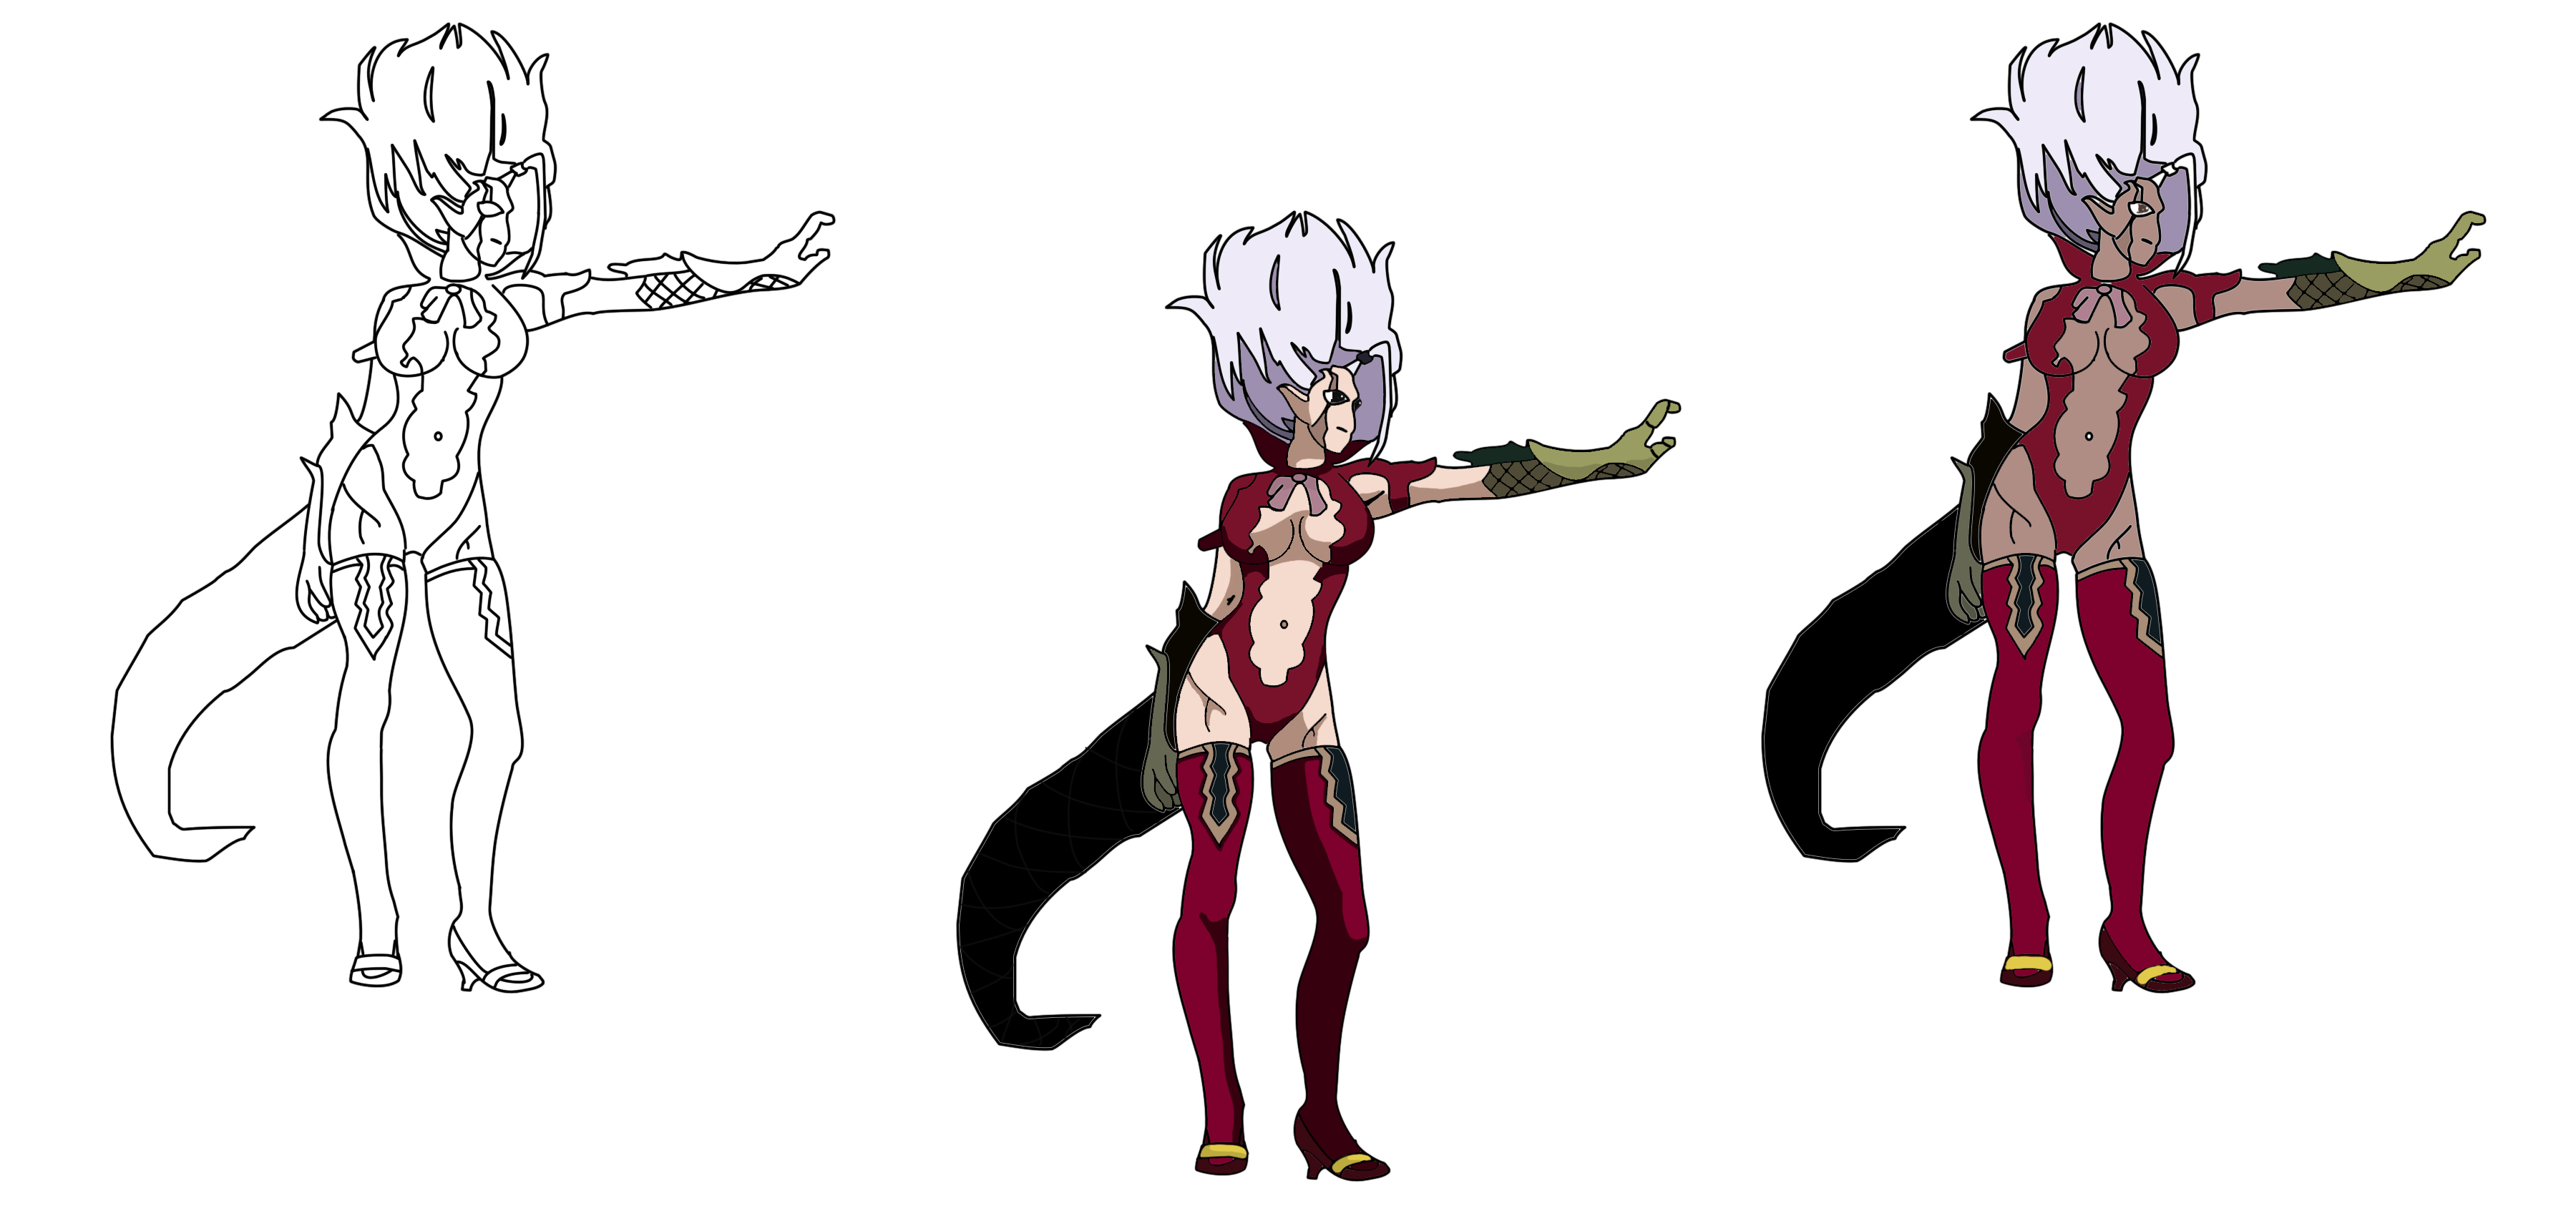 Drawn devil By Mira and and drawn